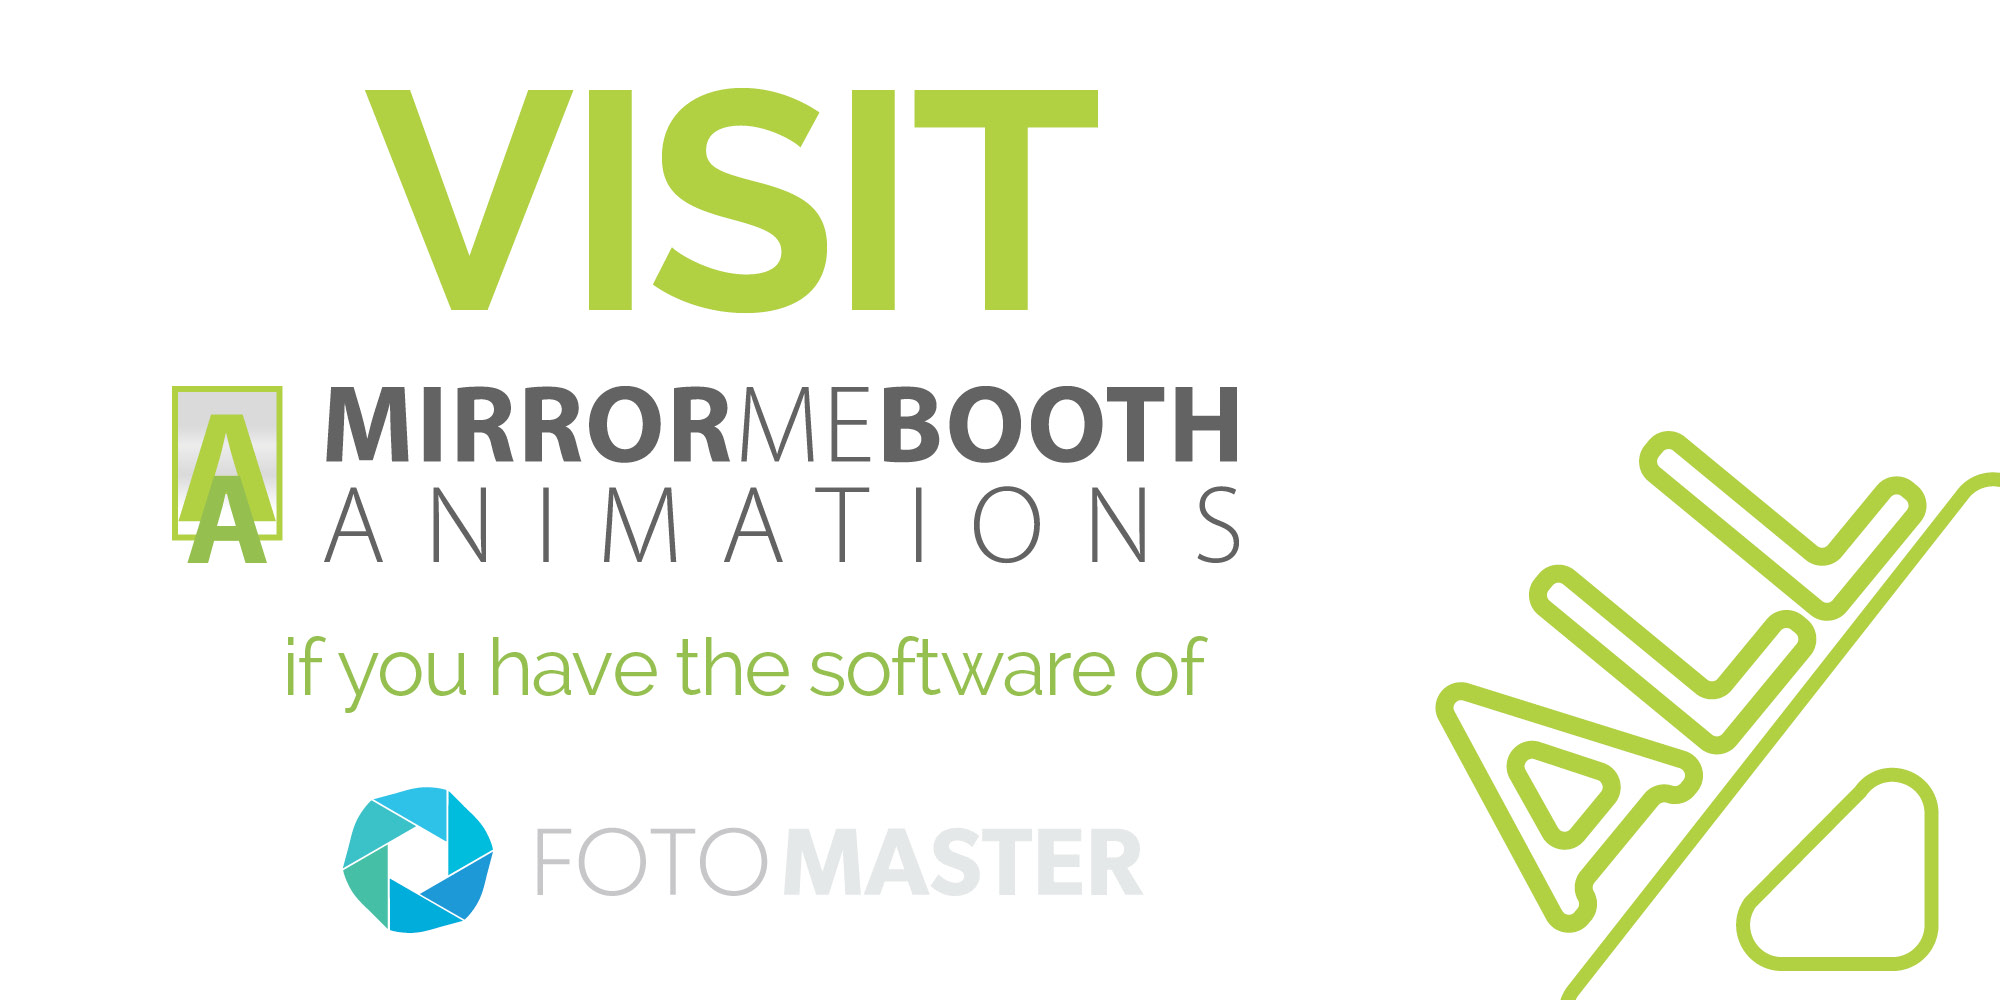 Mirrormebooth, animations, fotomaster, visit